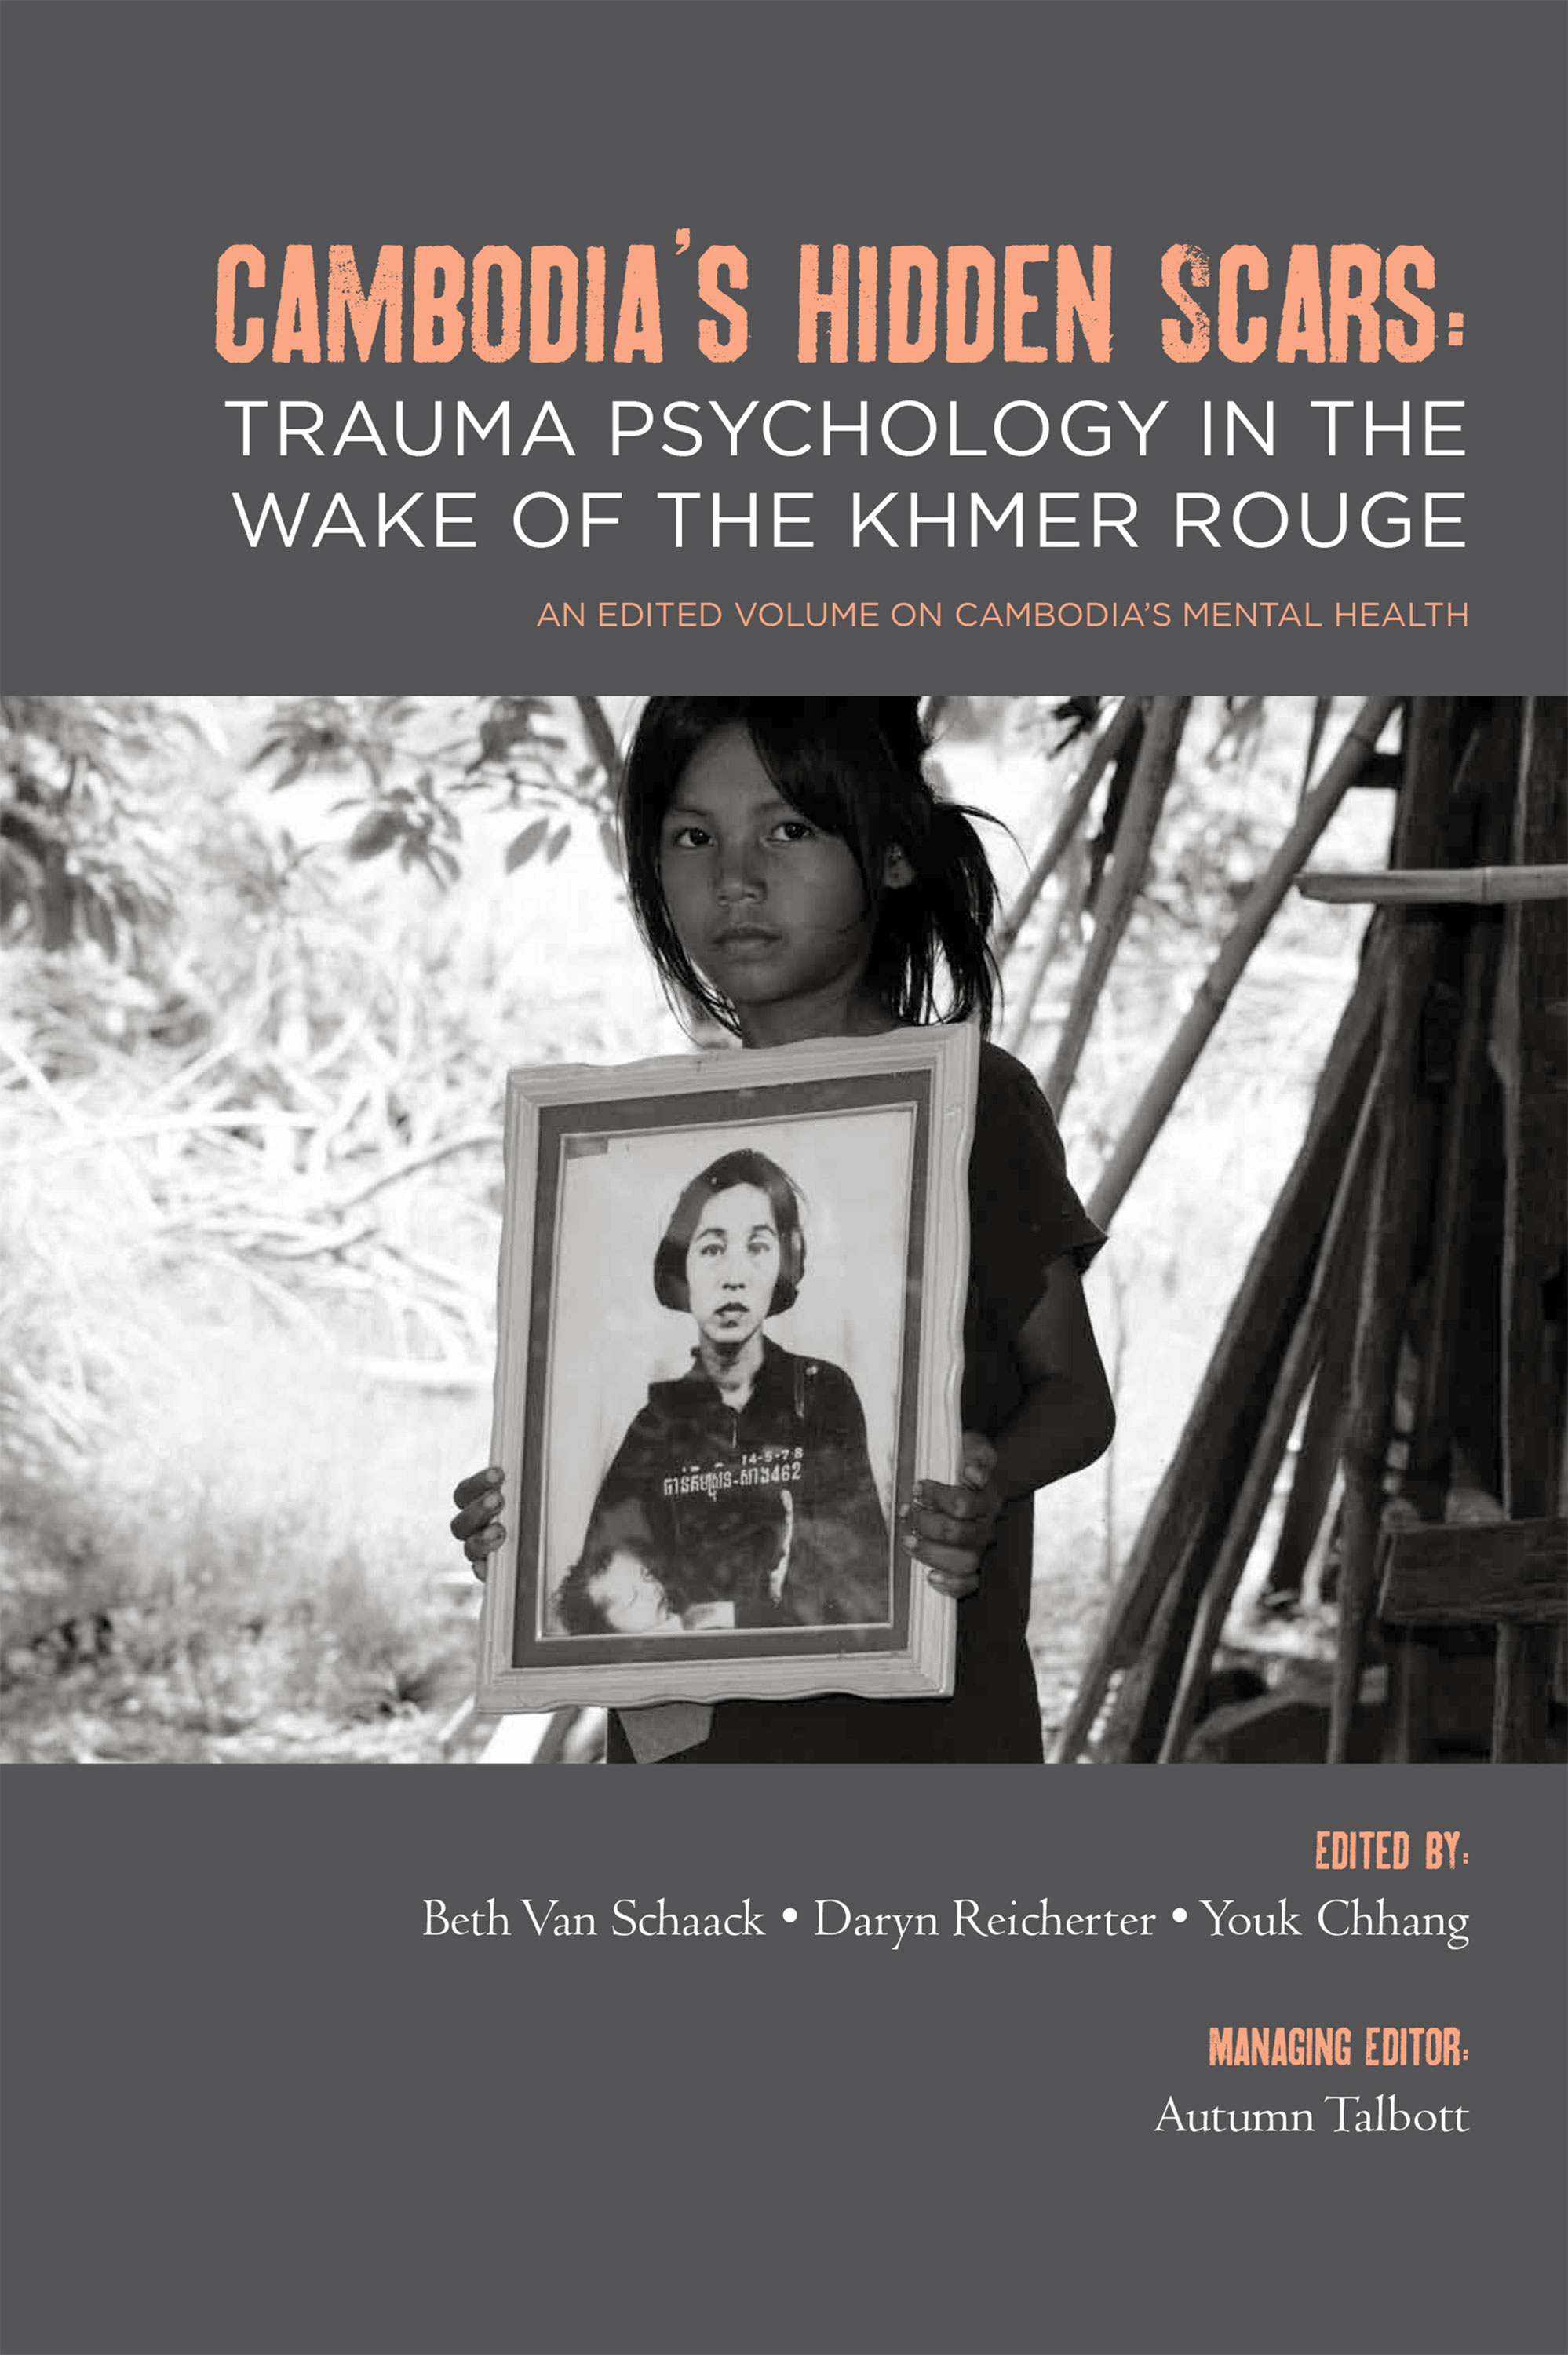 CAMBODIA'S HIDDEN SCARES: Trauma Psychology in the Wake of the Khmer Rouge, Edited by Beth Van Schaack, Daryn Reicherter & Youk Chhang Managing Editor: Autumn Talbot (2011)